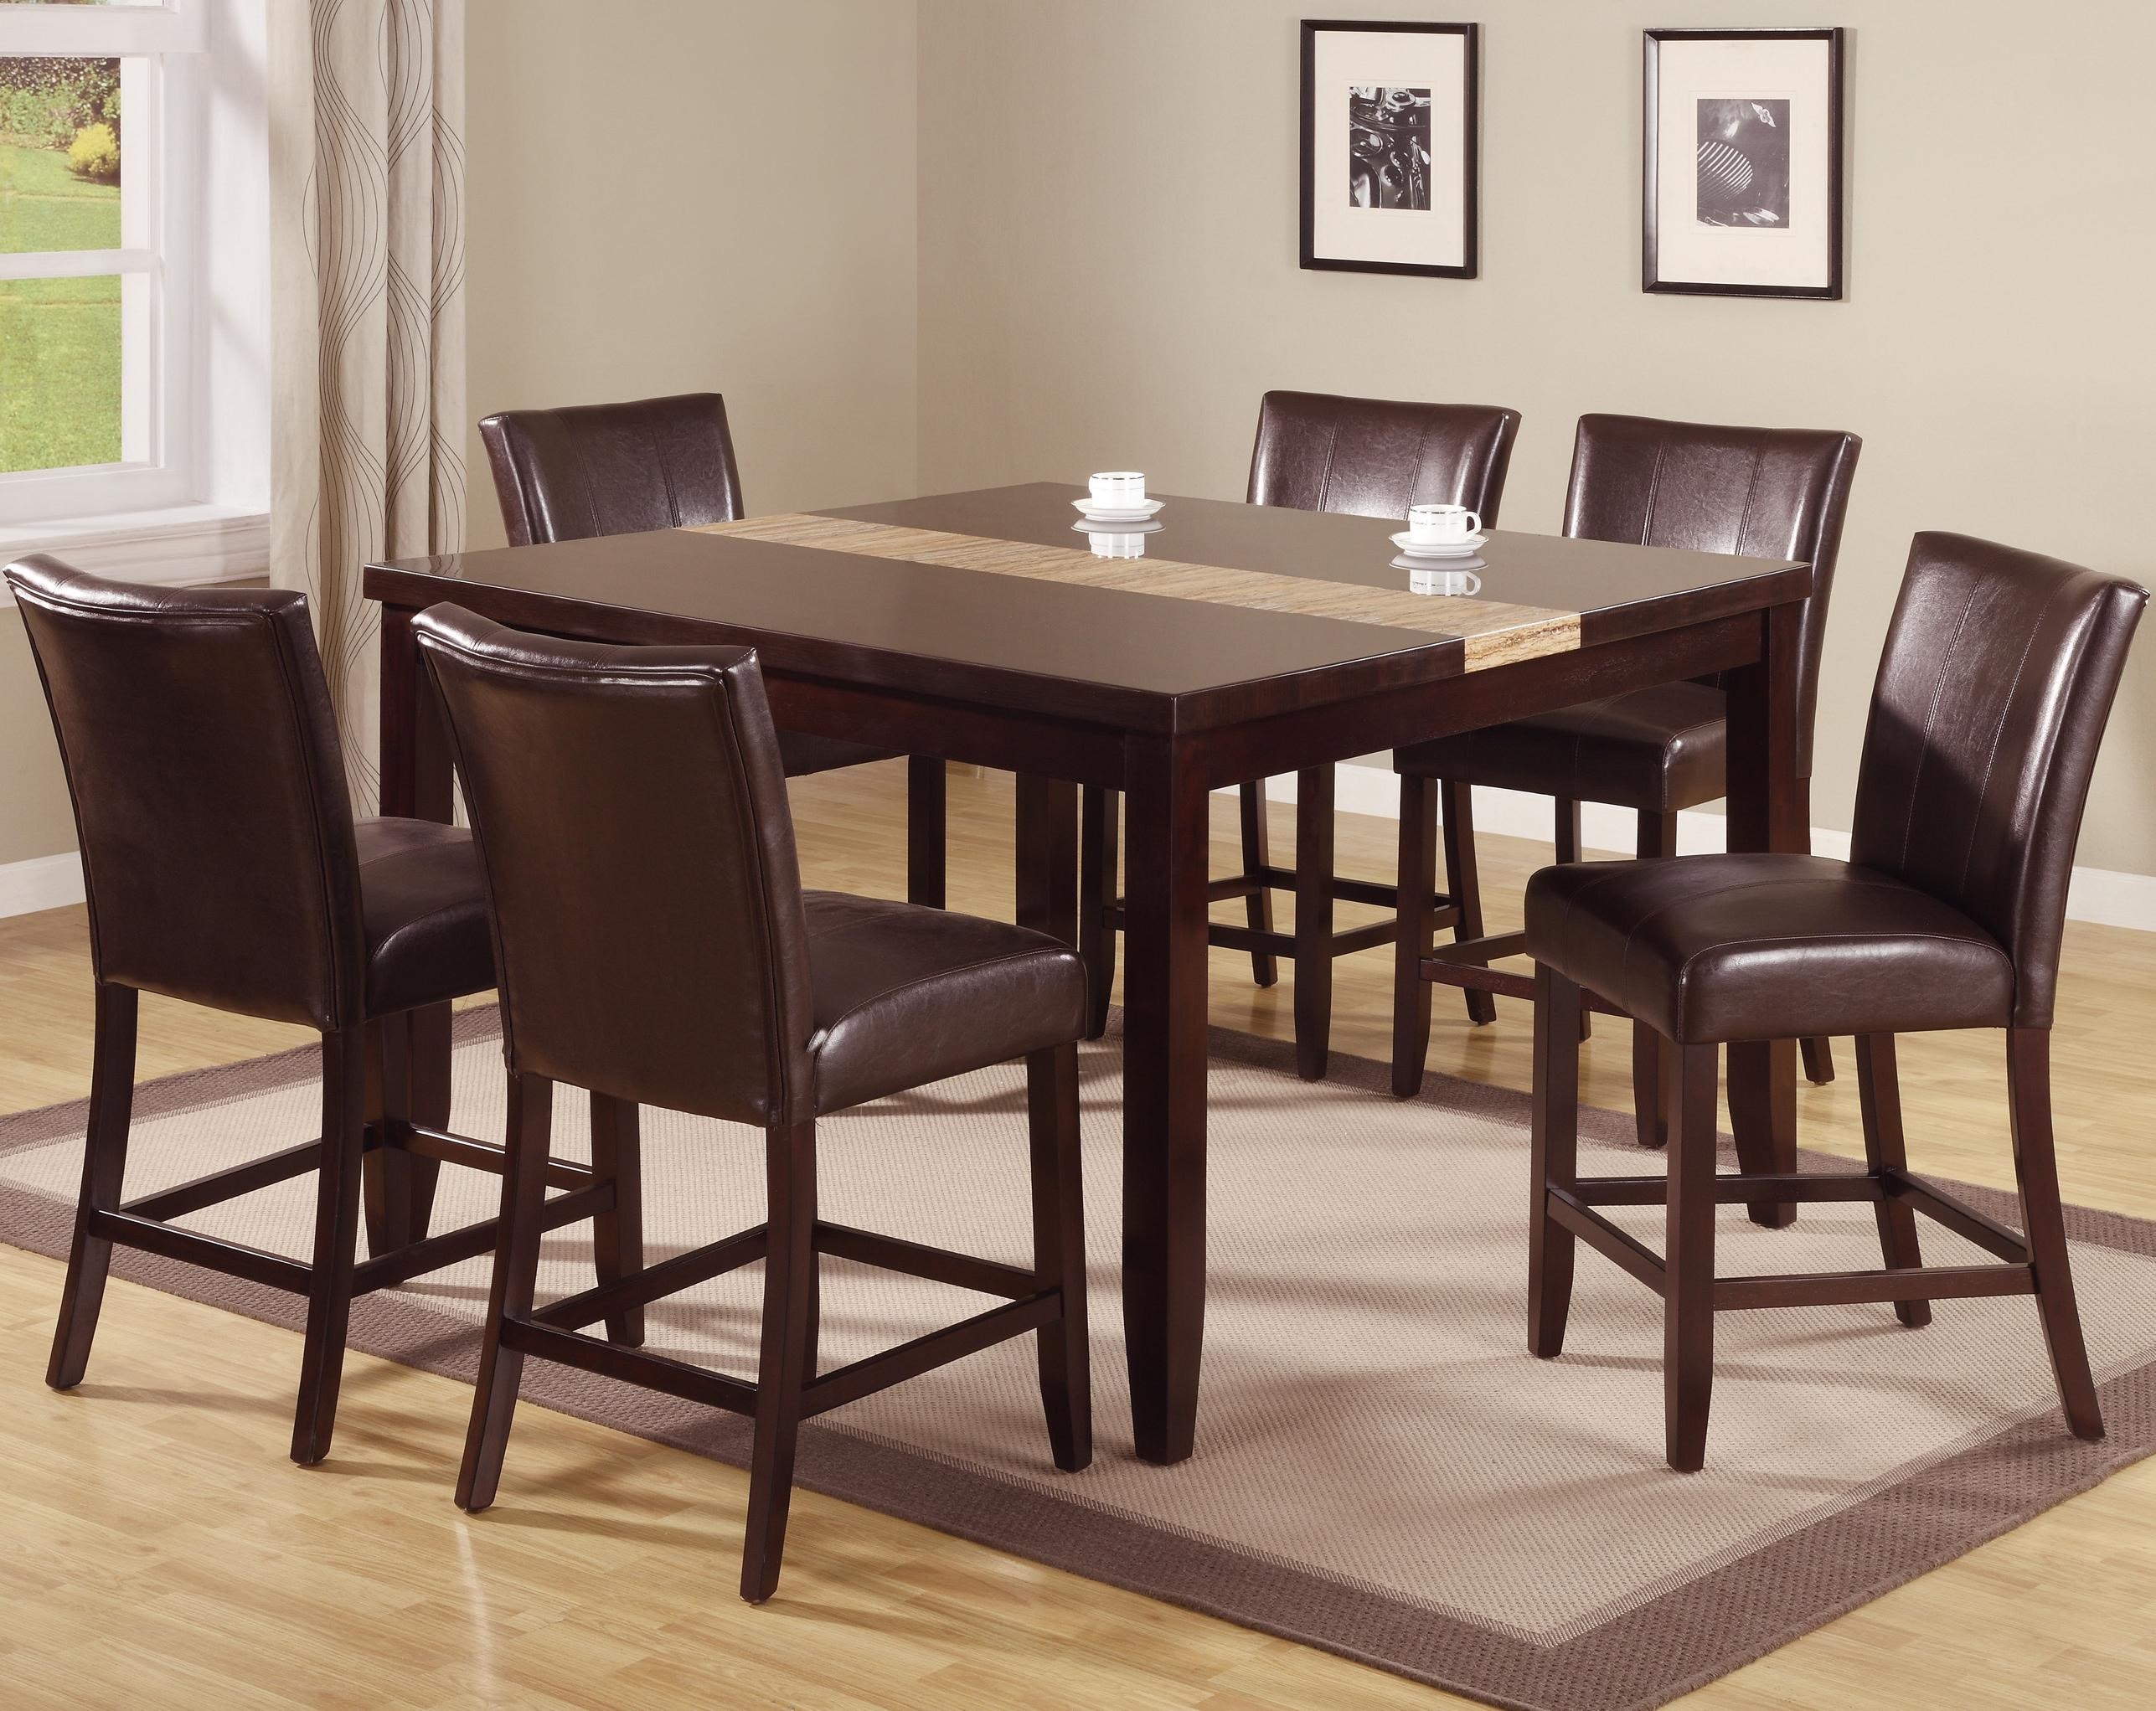 Crown Mark Madrid U0026 Ferrara 7 Piece Pub Table Set With Upholstered Counter  Chairs